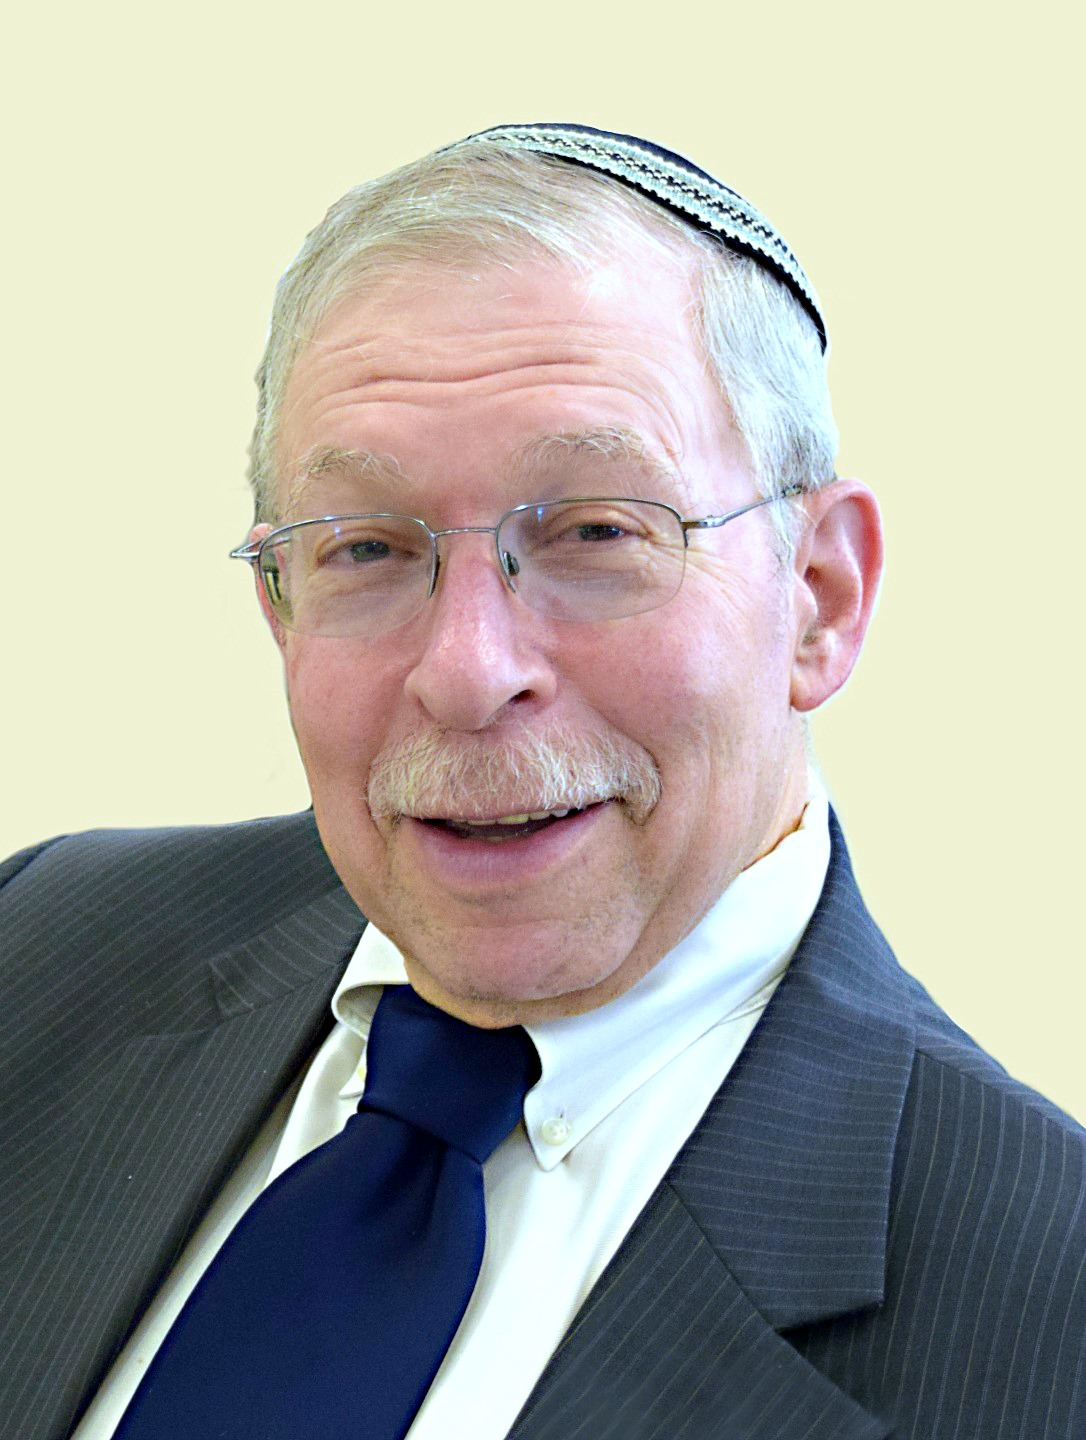 Rabbi James Michaels